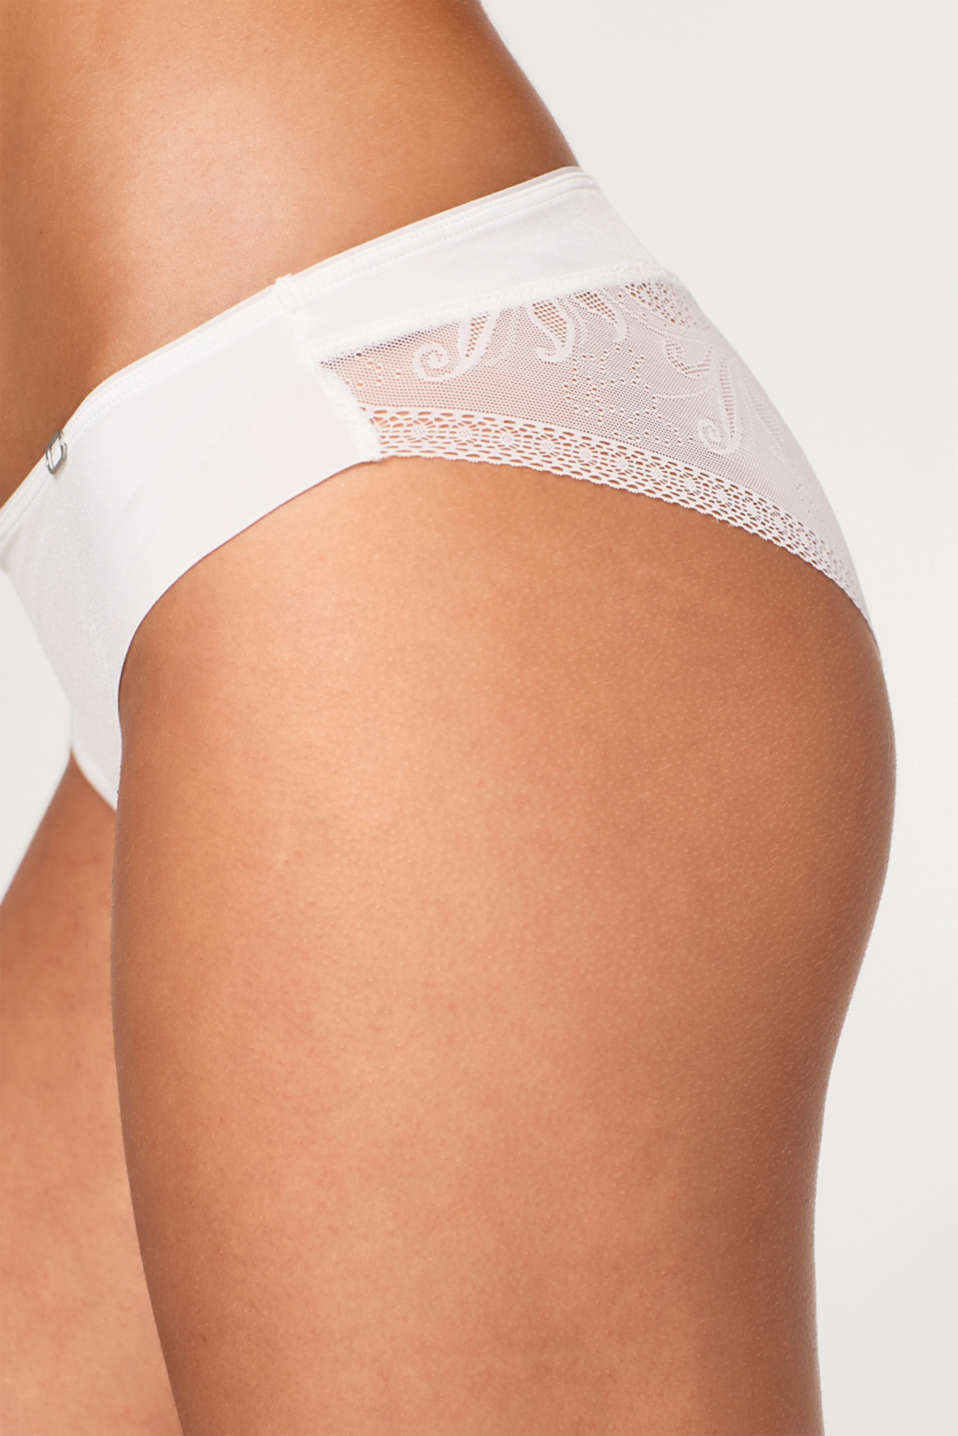 Hipster briefs with filigree lace